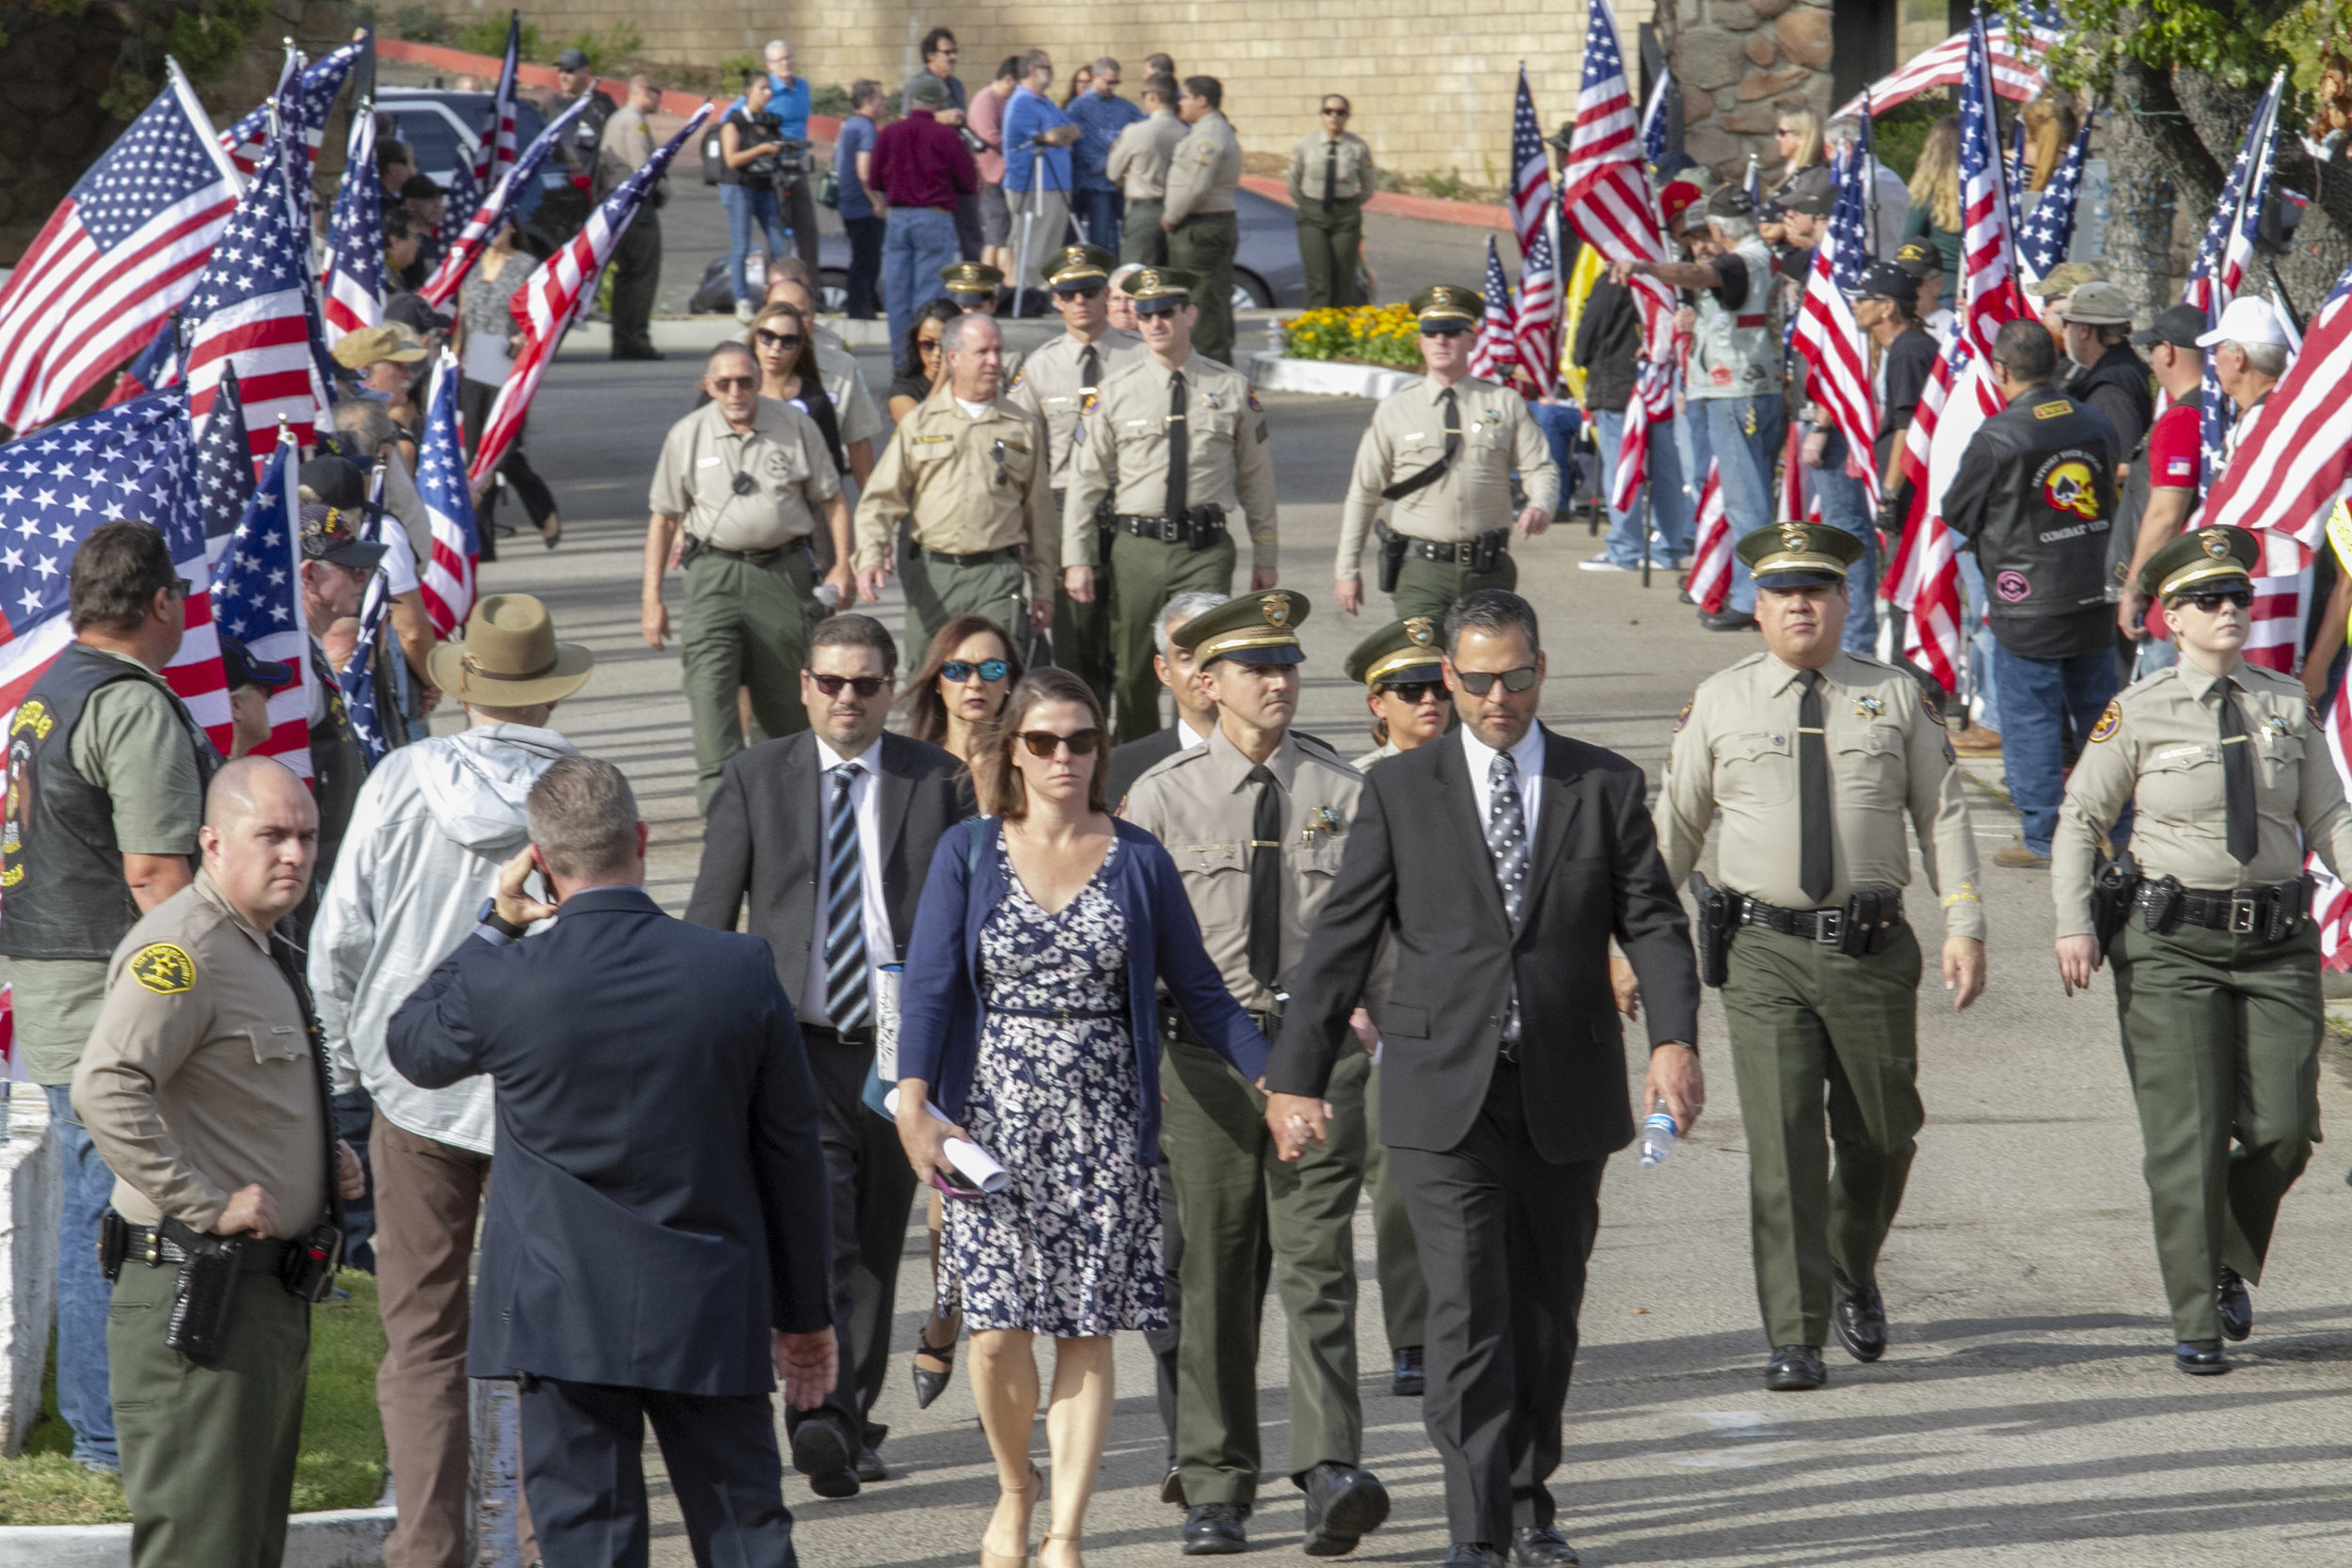 Attendees walk to the final burial site for Sgt. Ron Helus at Pierce Brothers Valley Oaks Park in Westlake Village, California on Thursday, Nov. 15, 2018. (Photo by Andrew Narváez)